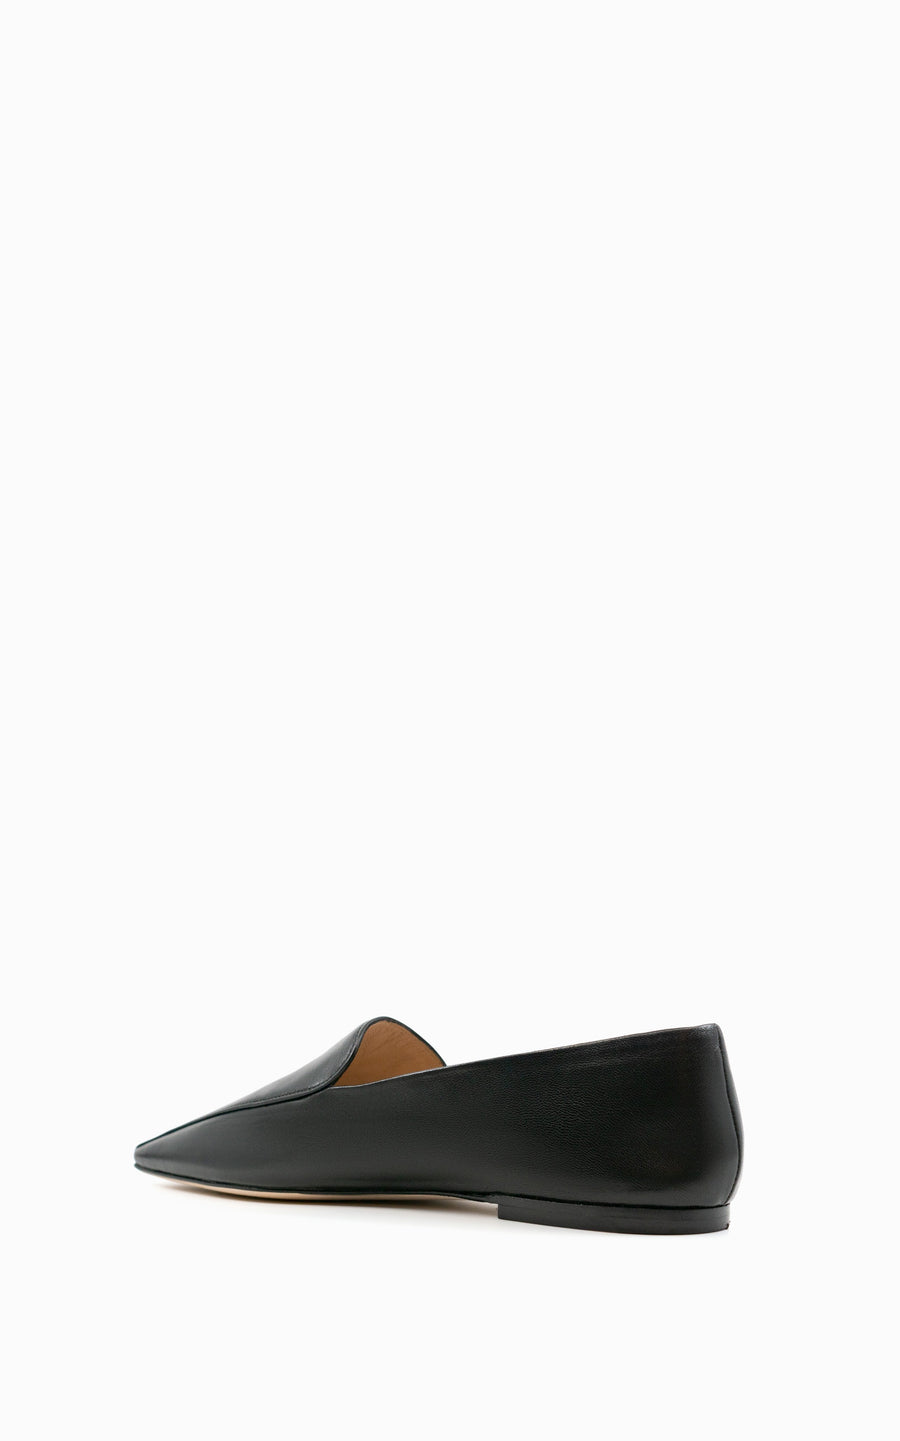 Preorder Squared Soft Loafer | Black